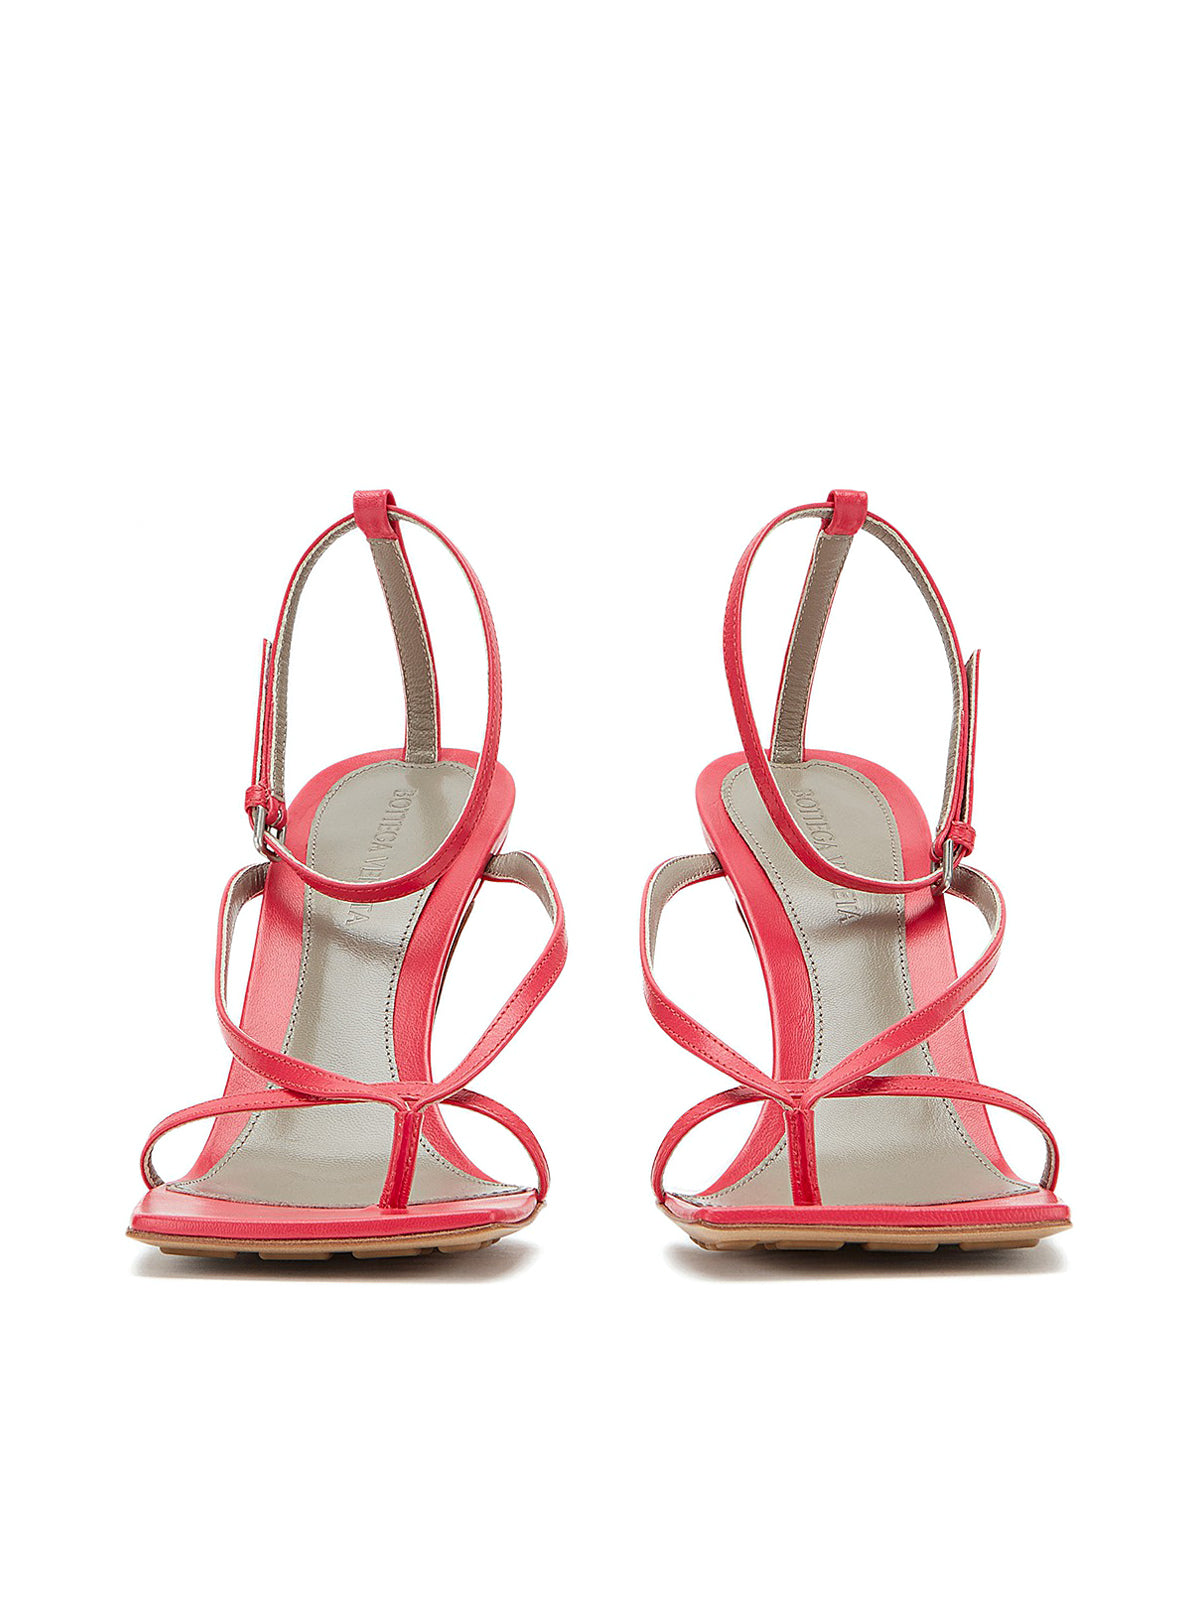 95mm leather sandals